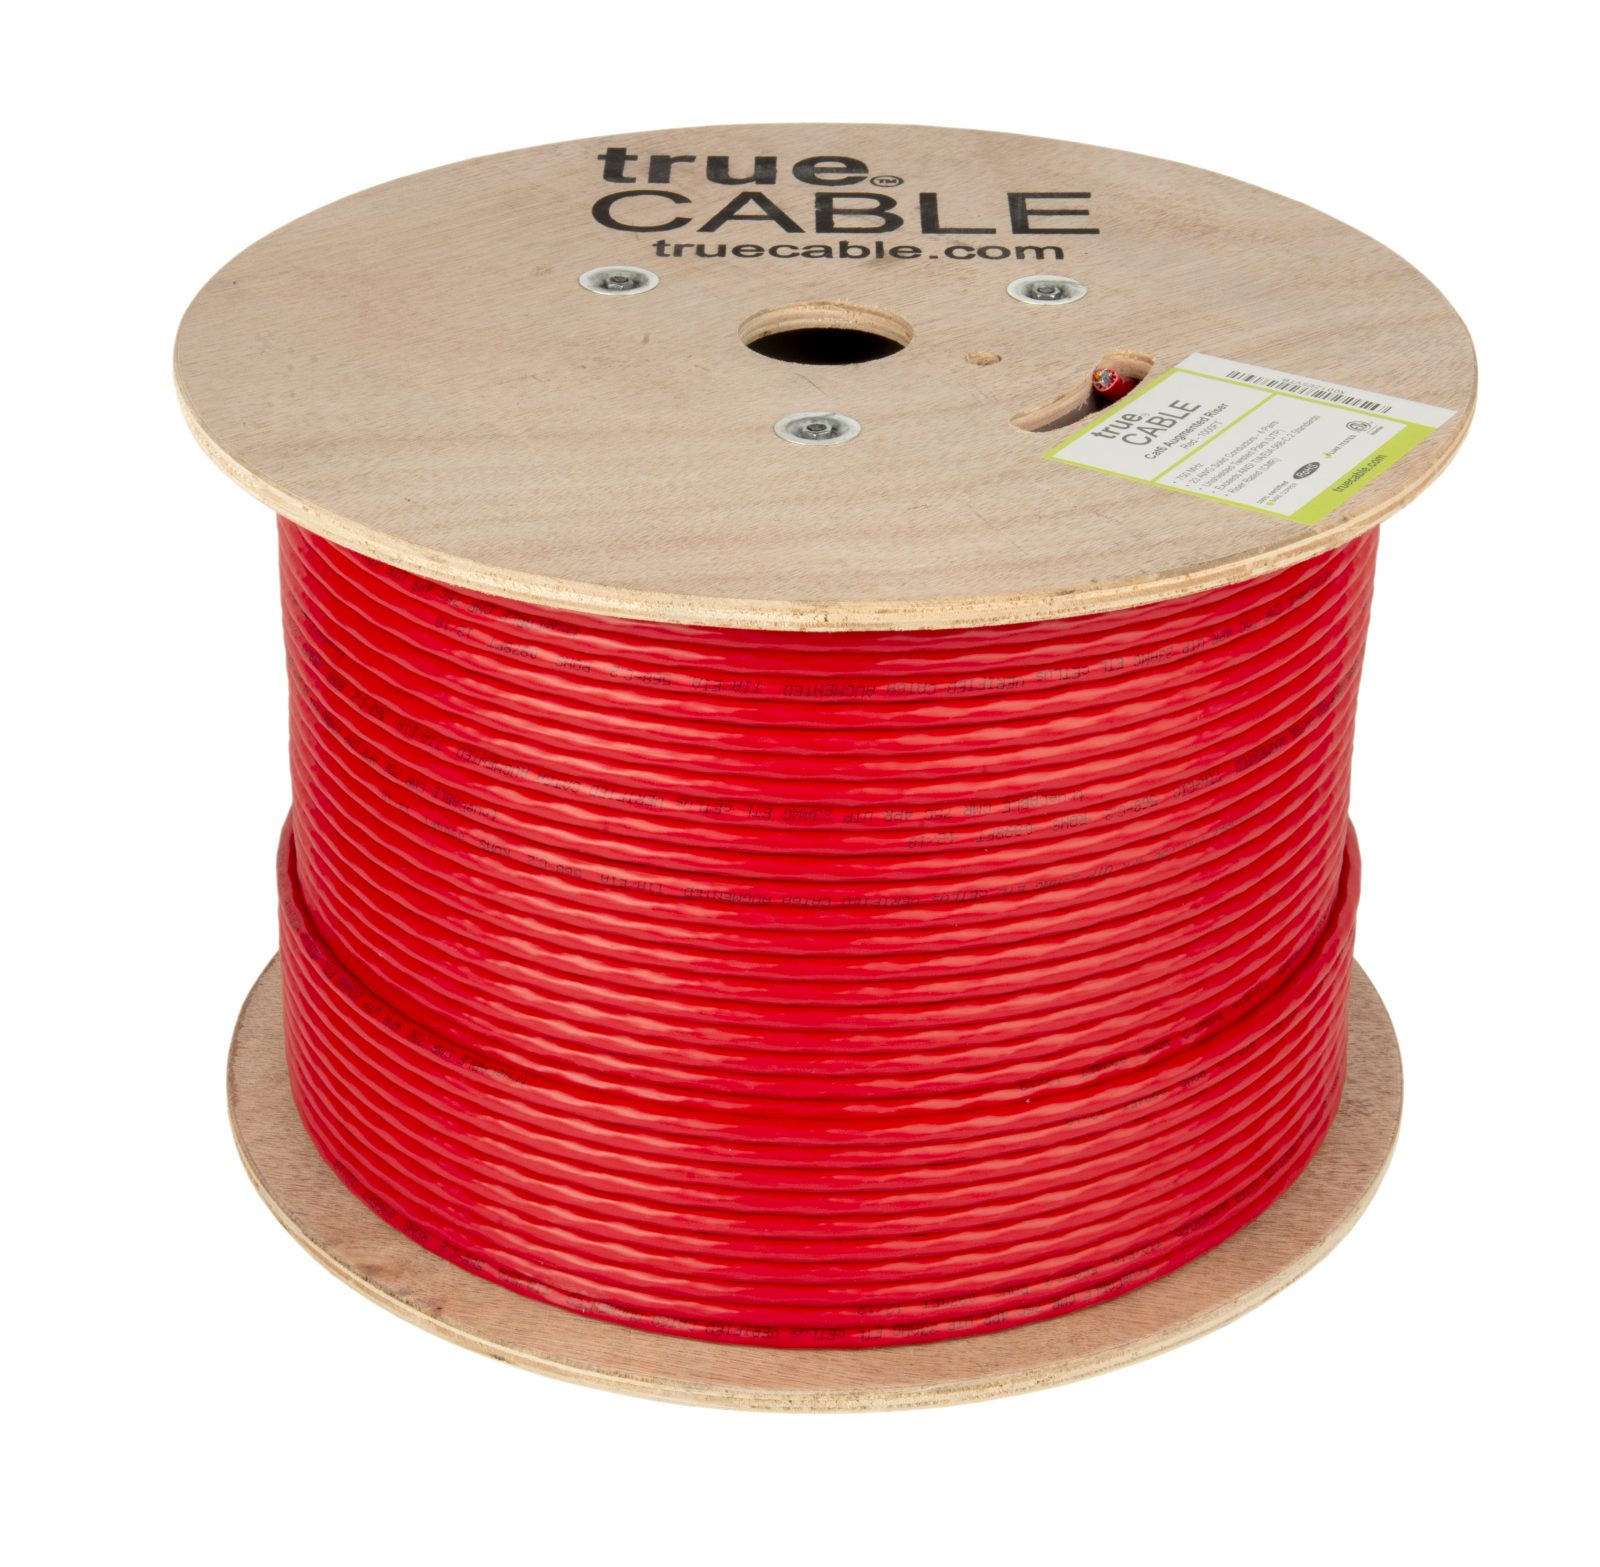 True Cable red cable reel photographed by Robintek Photography